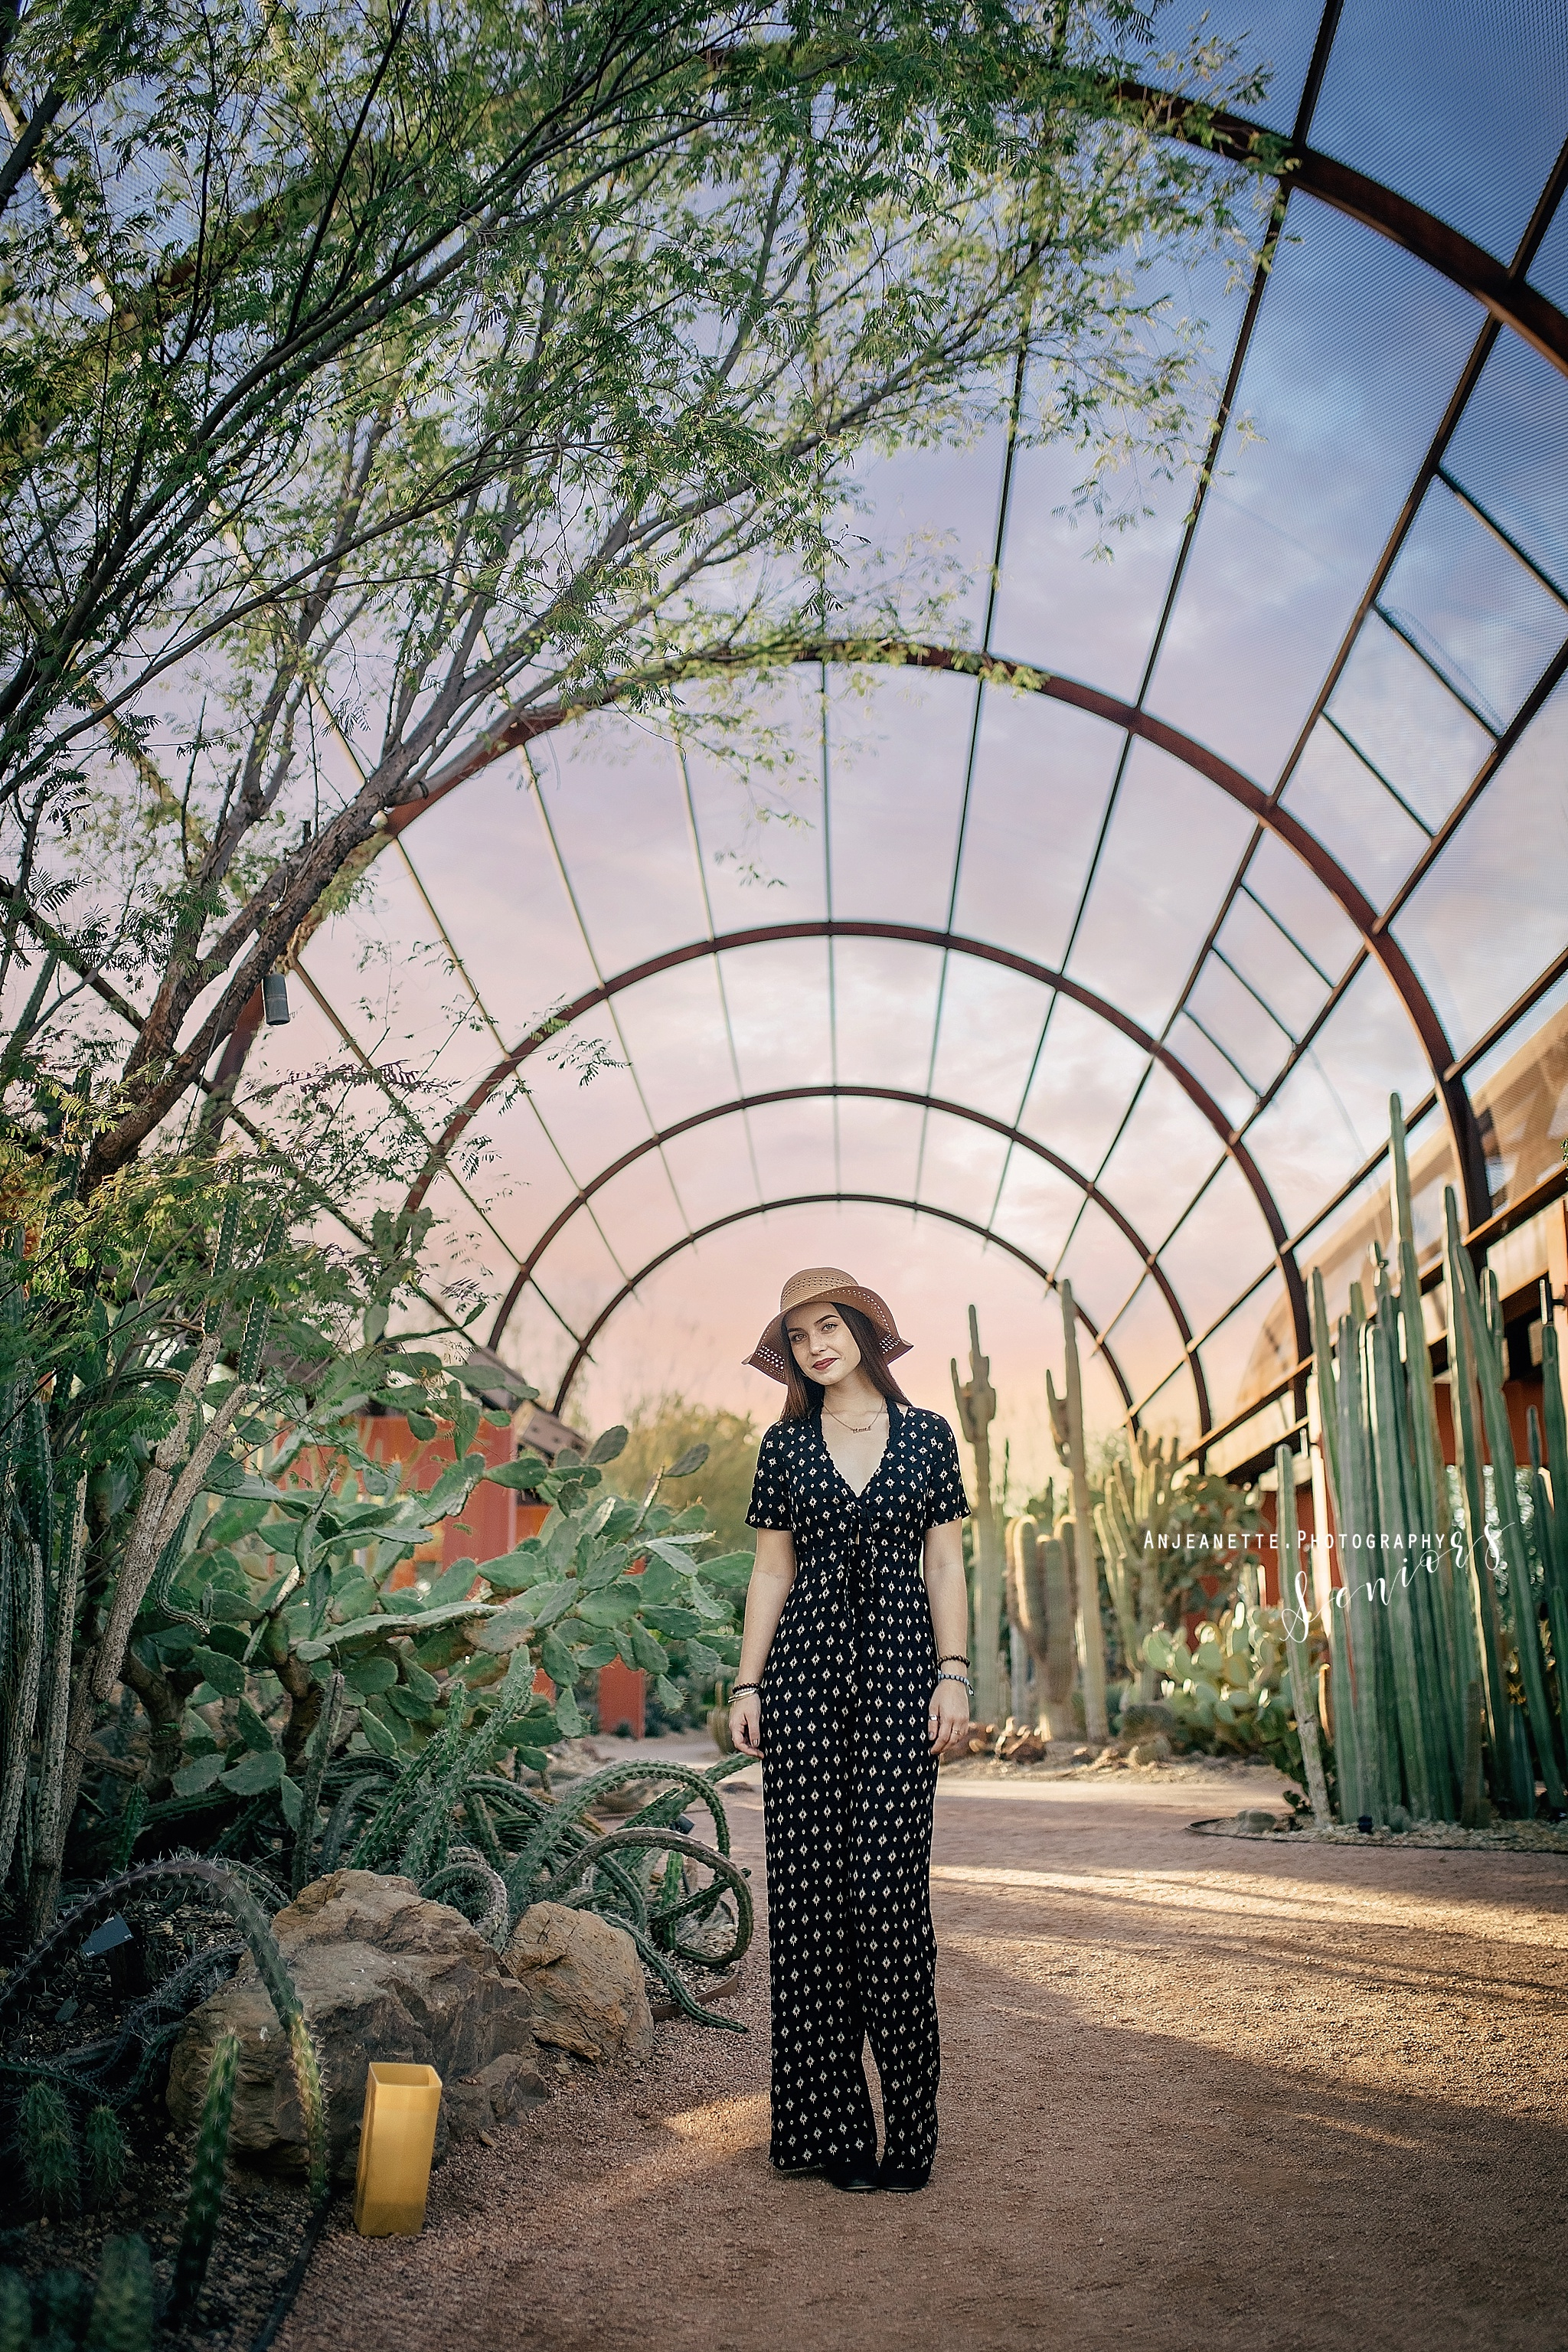 scottsdale high school portraits, families, & Headshot photographer Anjeanette Photography Phx Arizona desert botanical garden DBGPHX Places to take senior pictures Peoria Az